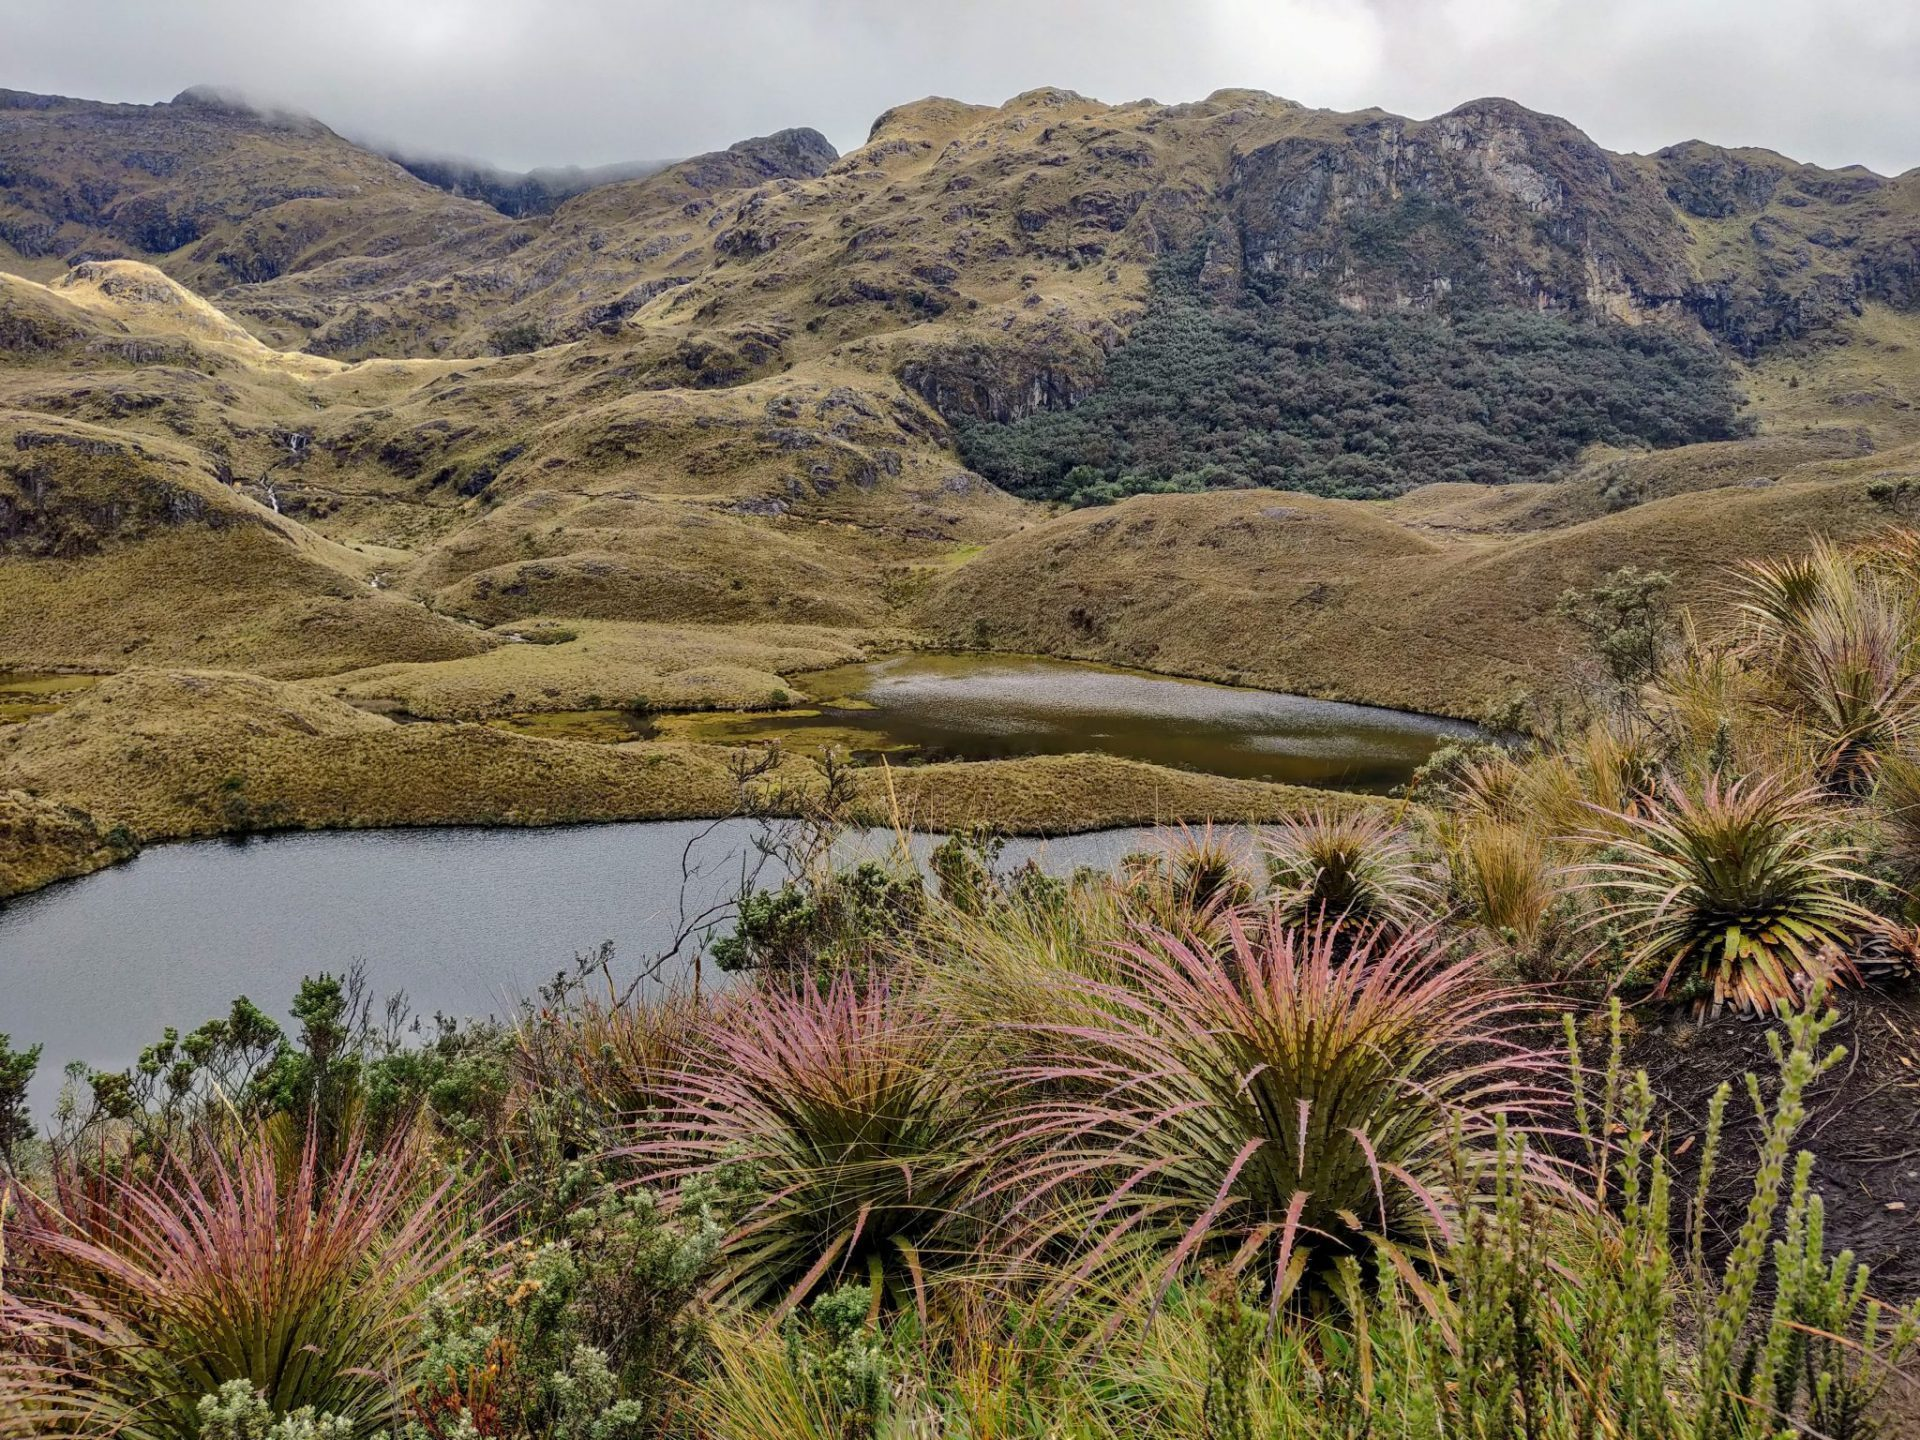 Lake and mountains in Cajas National Park near Cuenca Ecuador